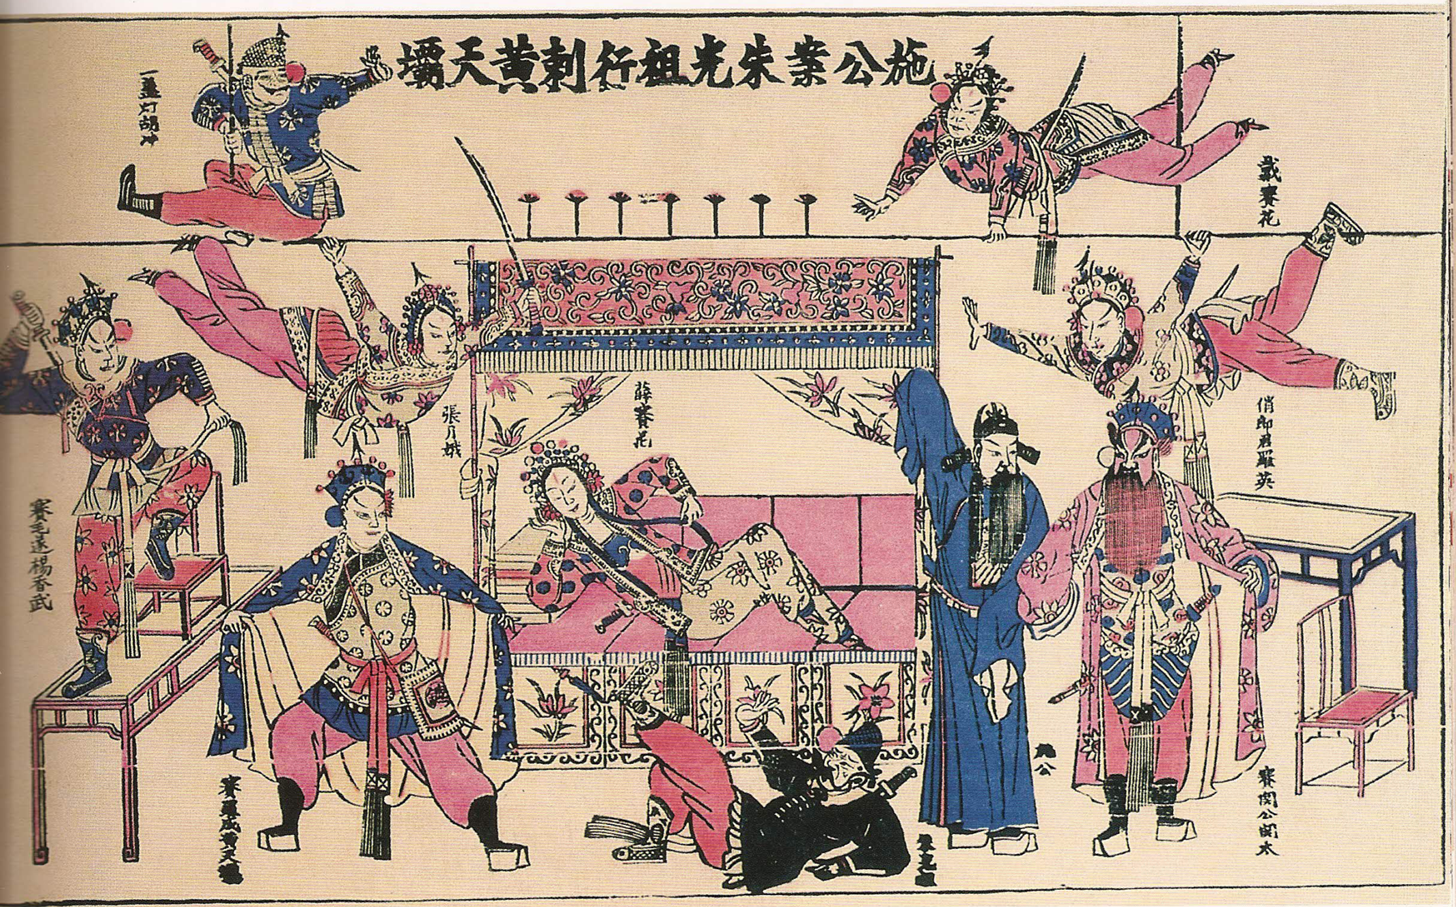 Legends, Media and Stars: The Transmission of Chinese Popular Culture, 1820s-1920s